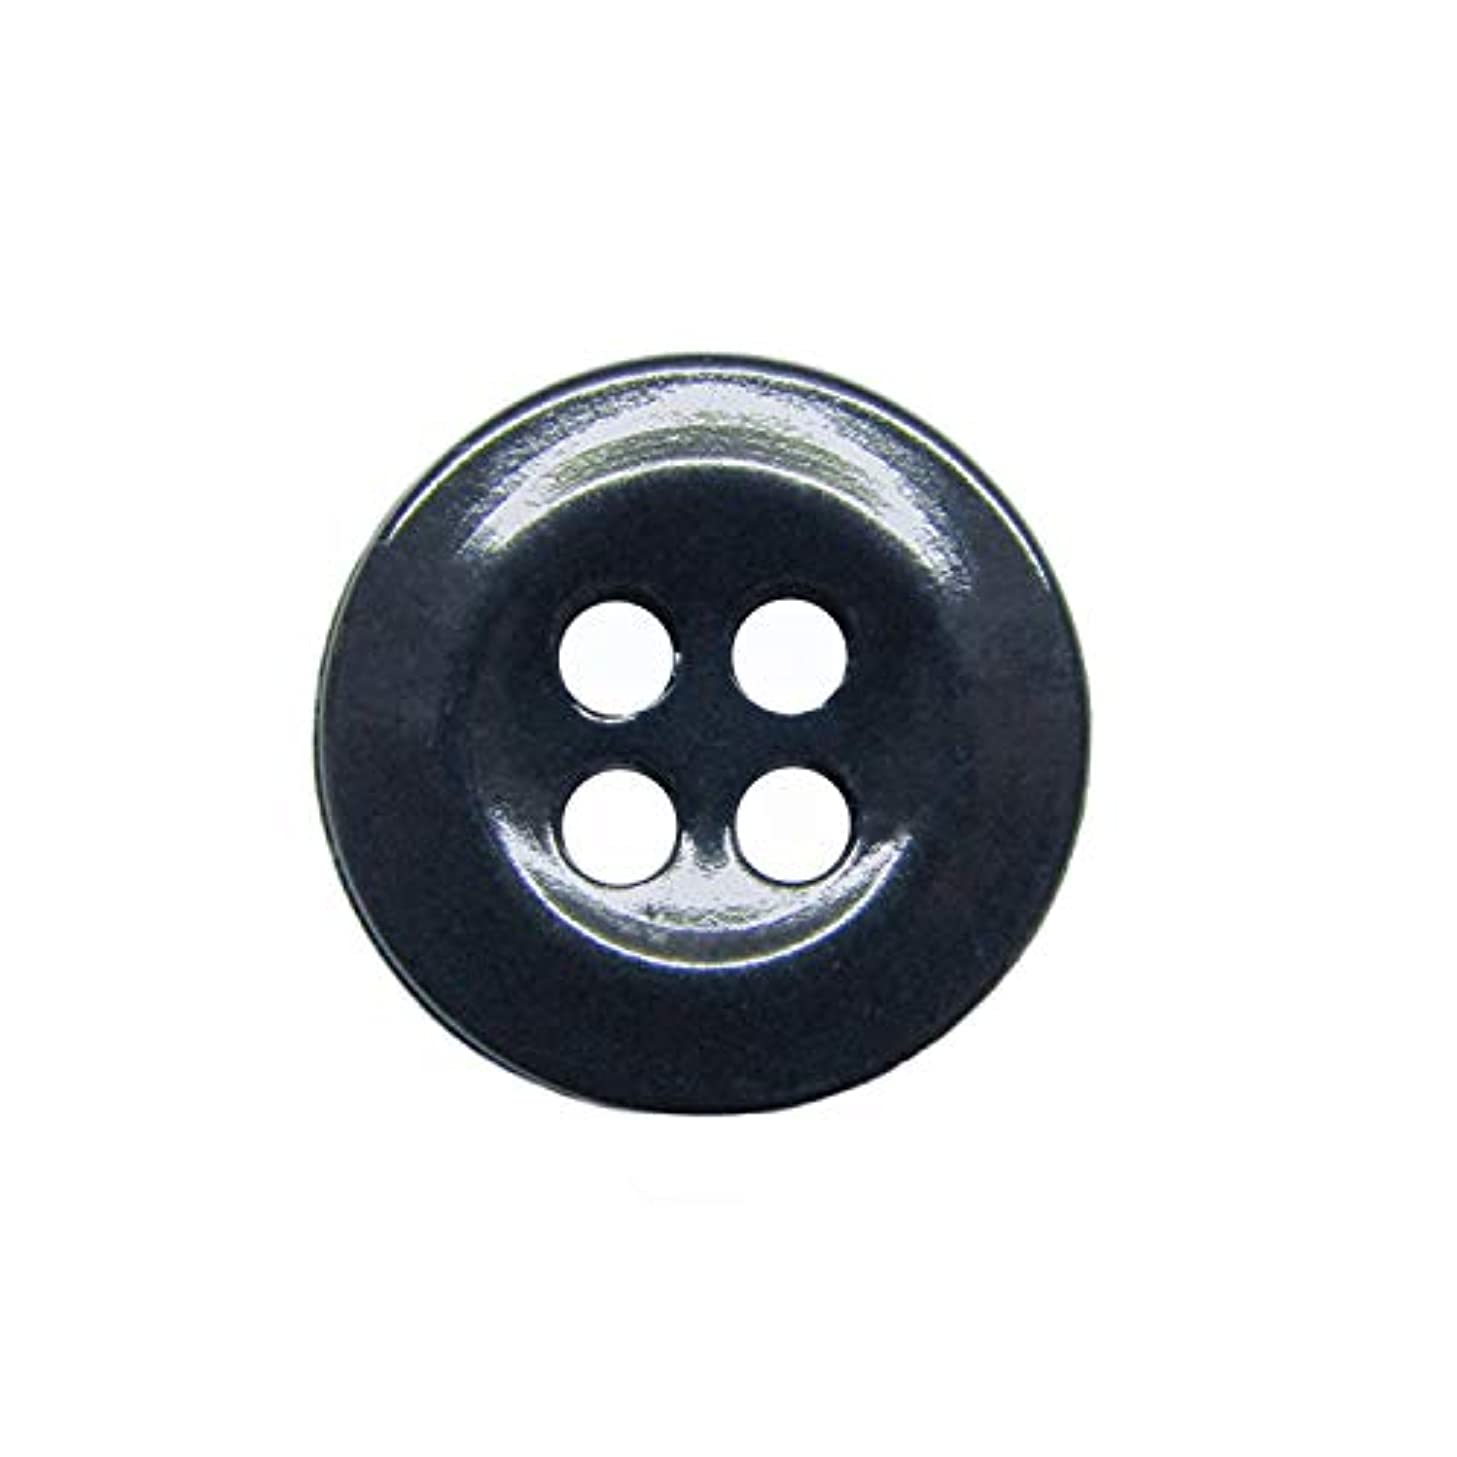 ButtonMode Workshop Industrial Strength Shirt Buttons Includes 22 Buttons Measuring 13mm (1/2 Inch) for Shirts, Navy, 22-Buttons